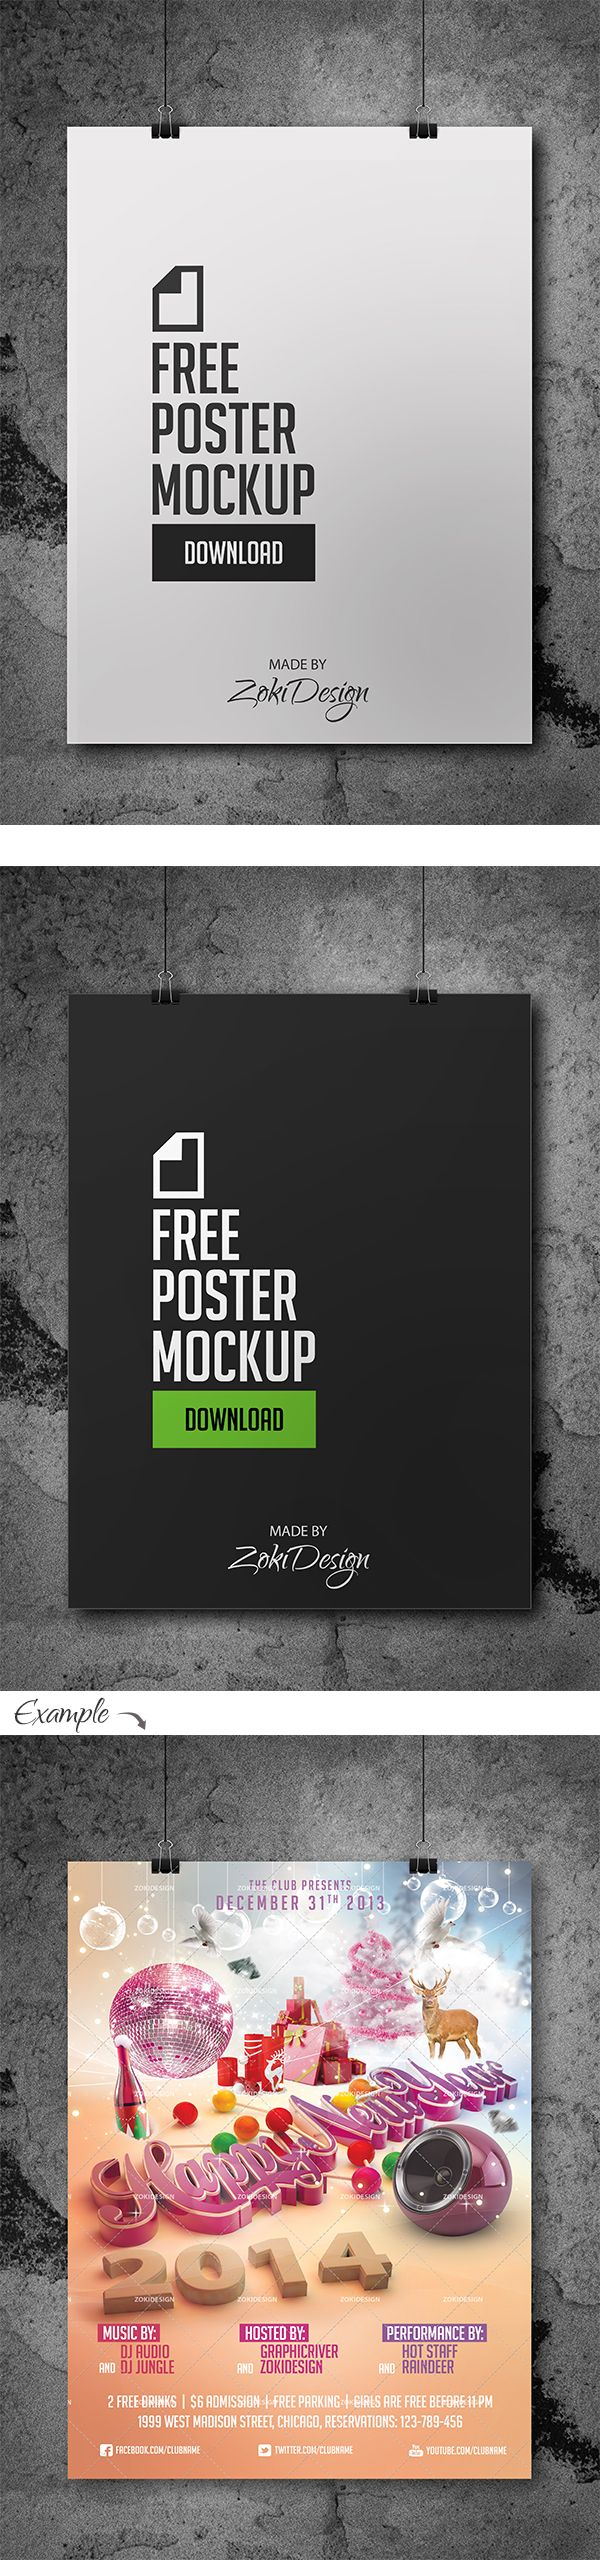 Poster design software windows 7 - Gallery Of Poster Design Software Windows 8